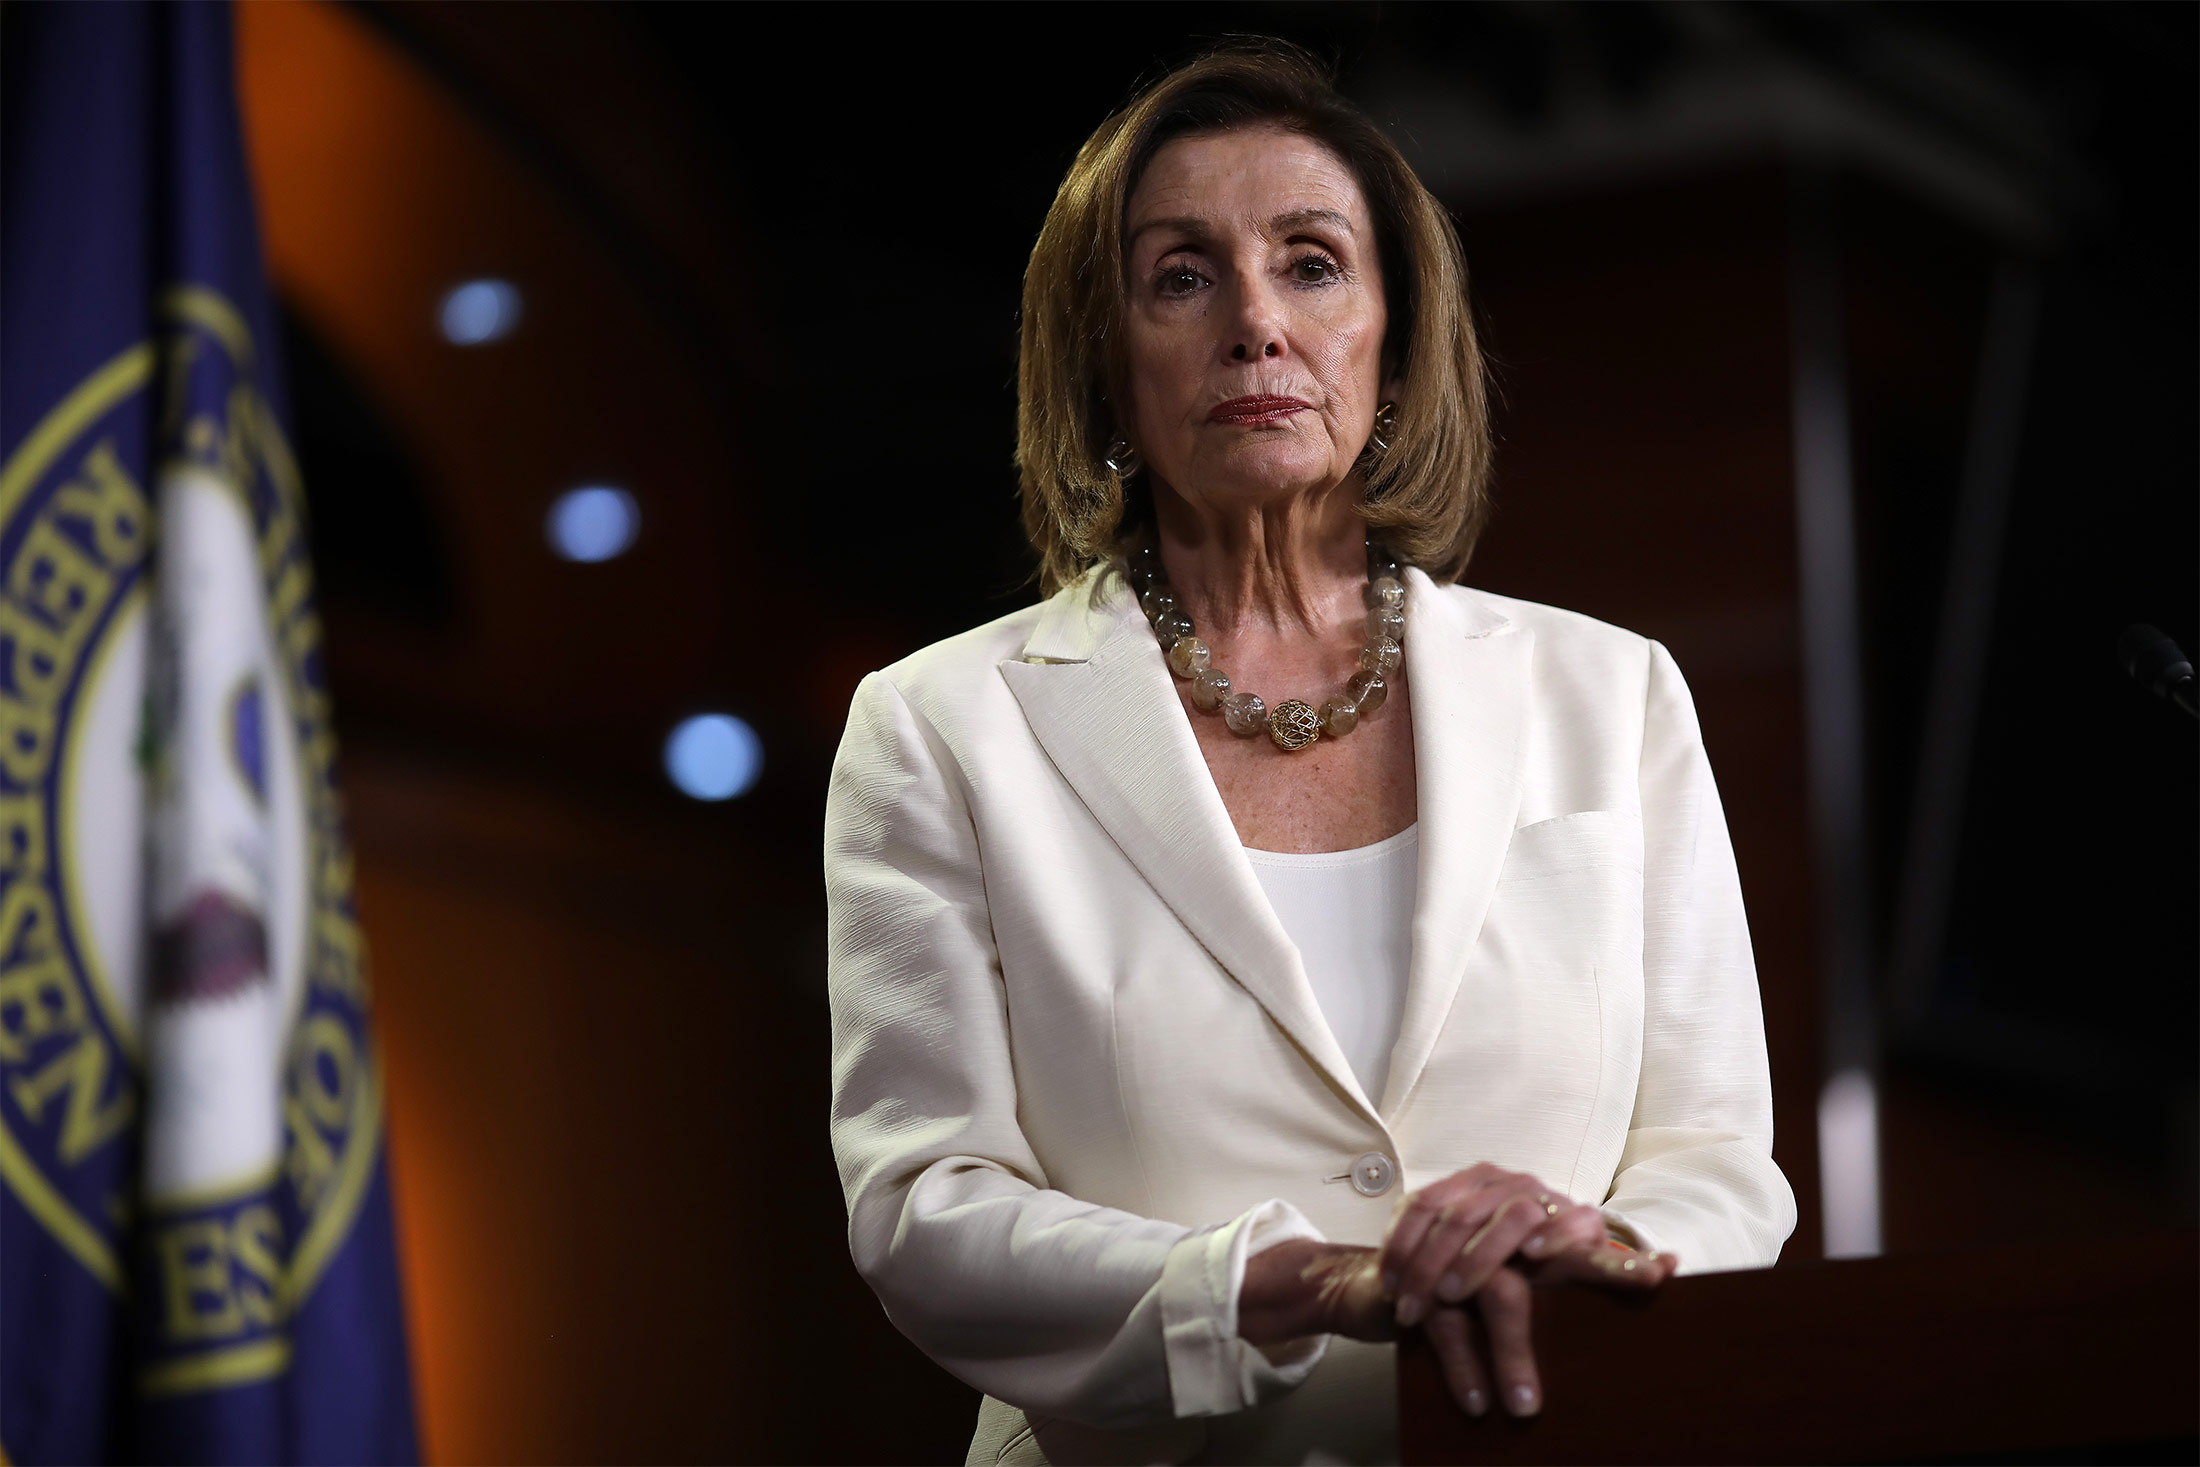 Pelosi Plans Vote to Condemn Trump for Tweets Attacking Congresswomen